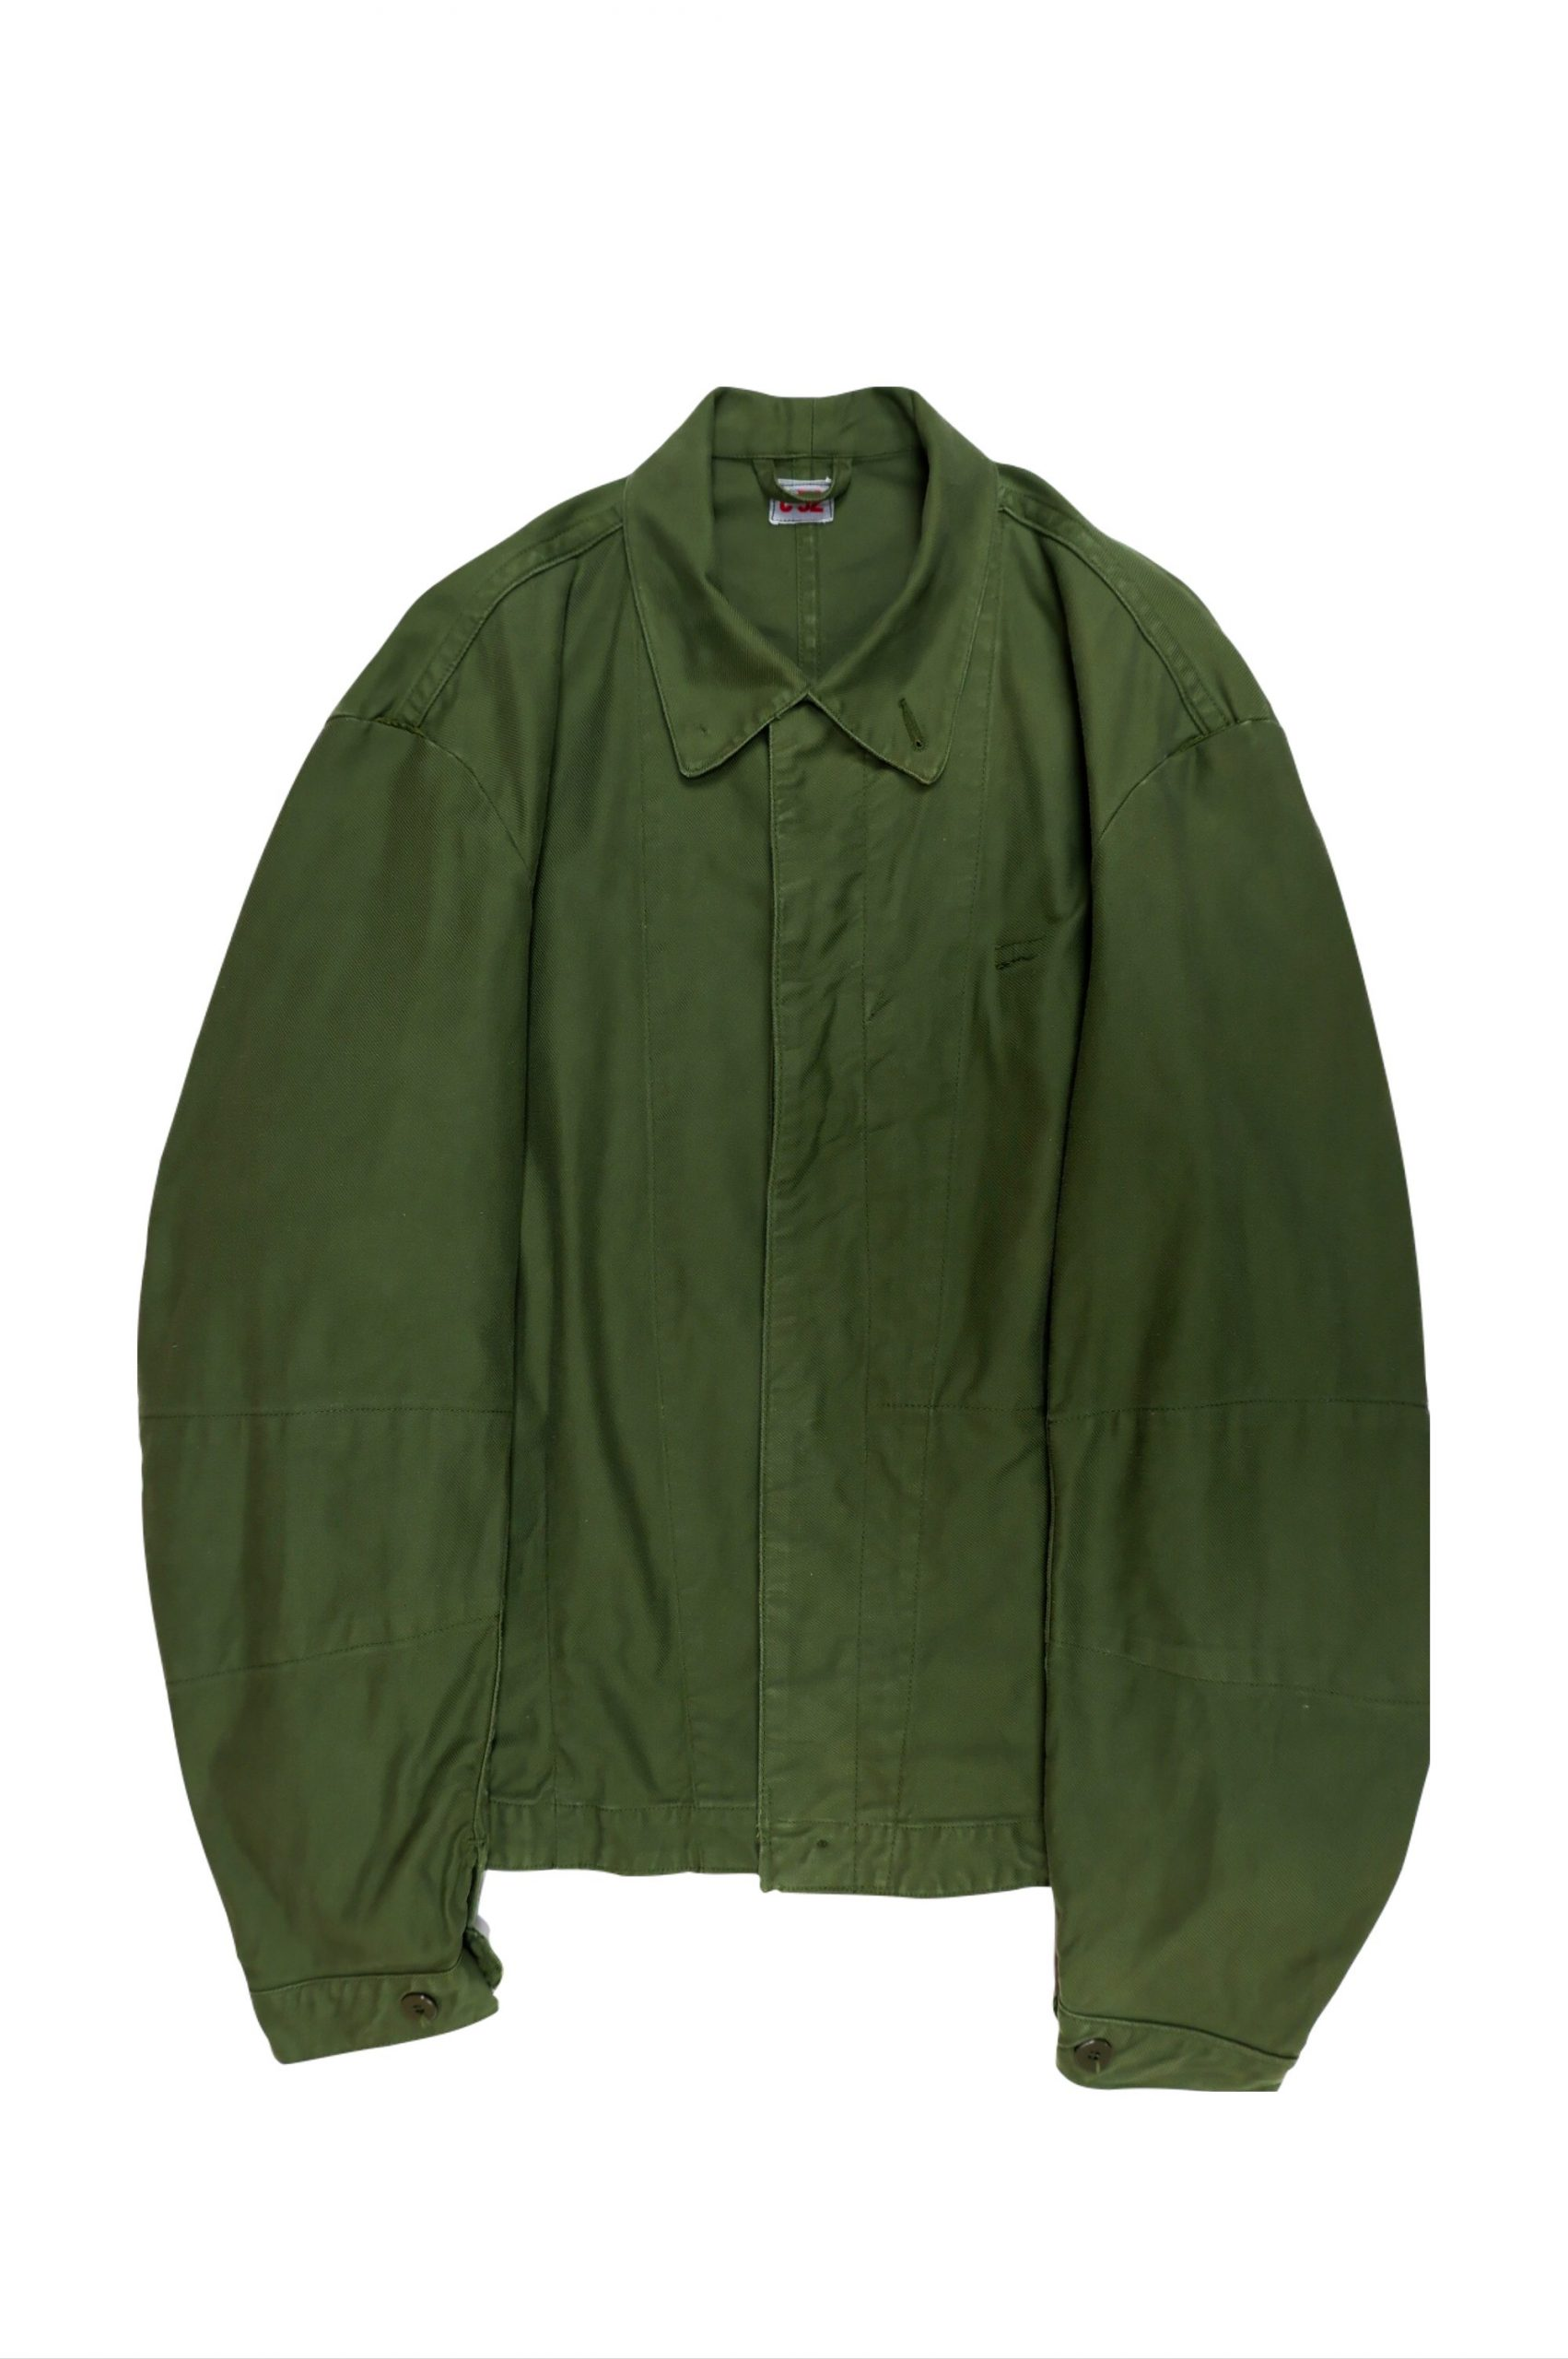 Swidish Army Work Jacket